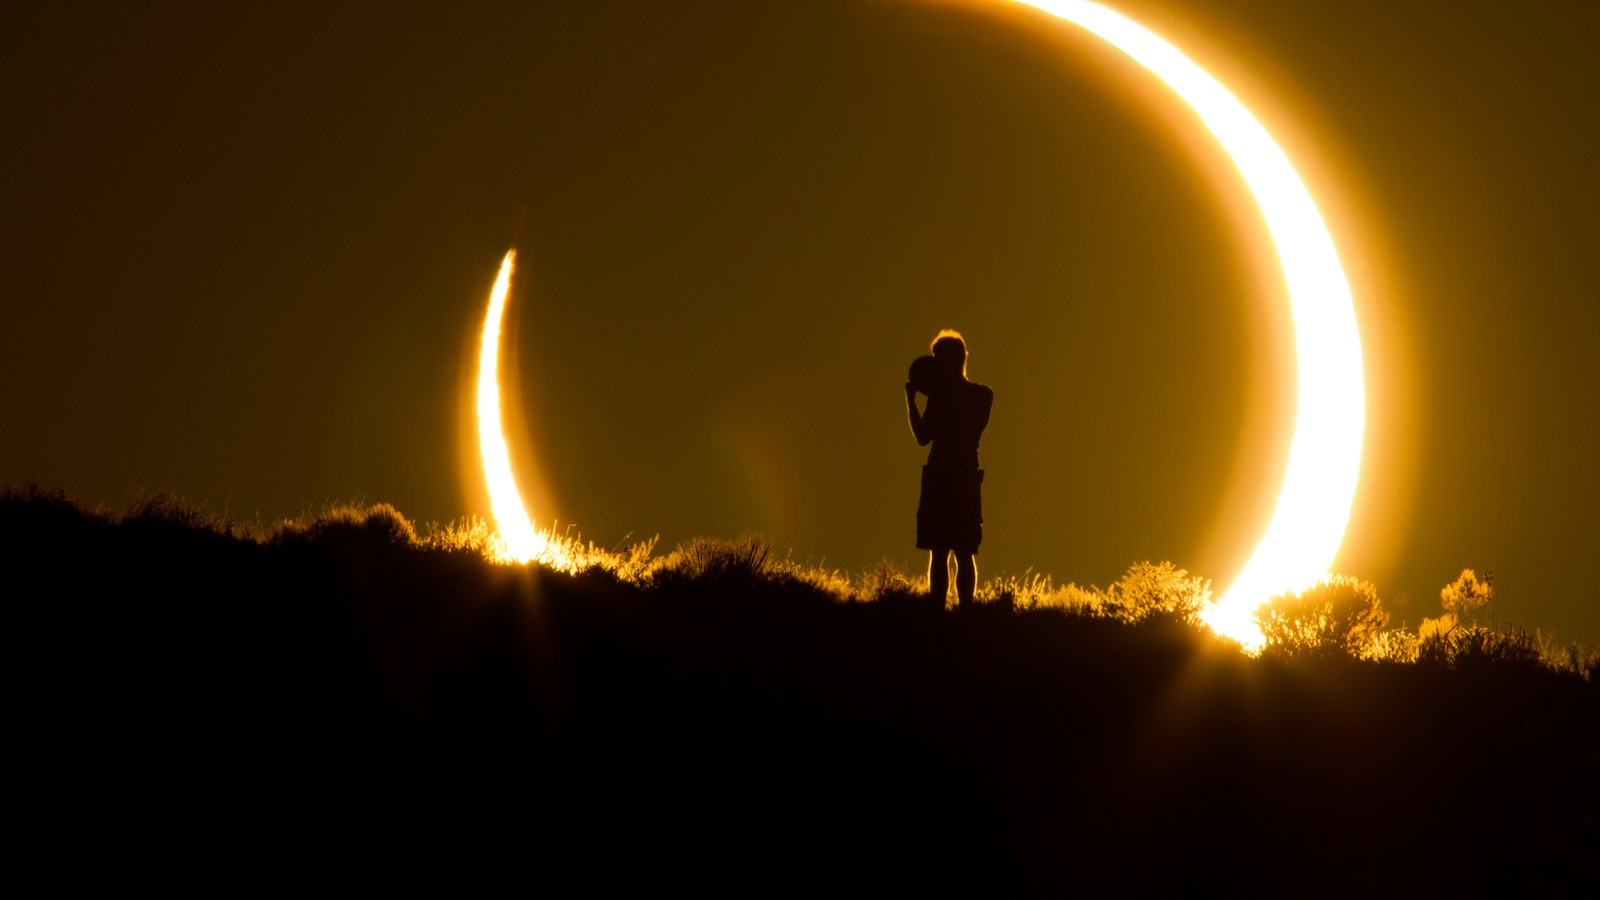 Wallpapers for Eclipse Wallpapers, 1600x900 Resolution